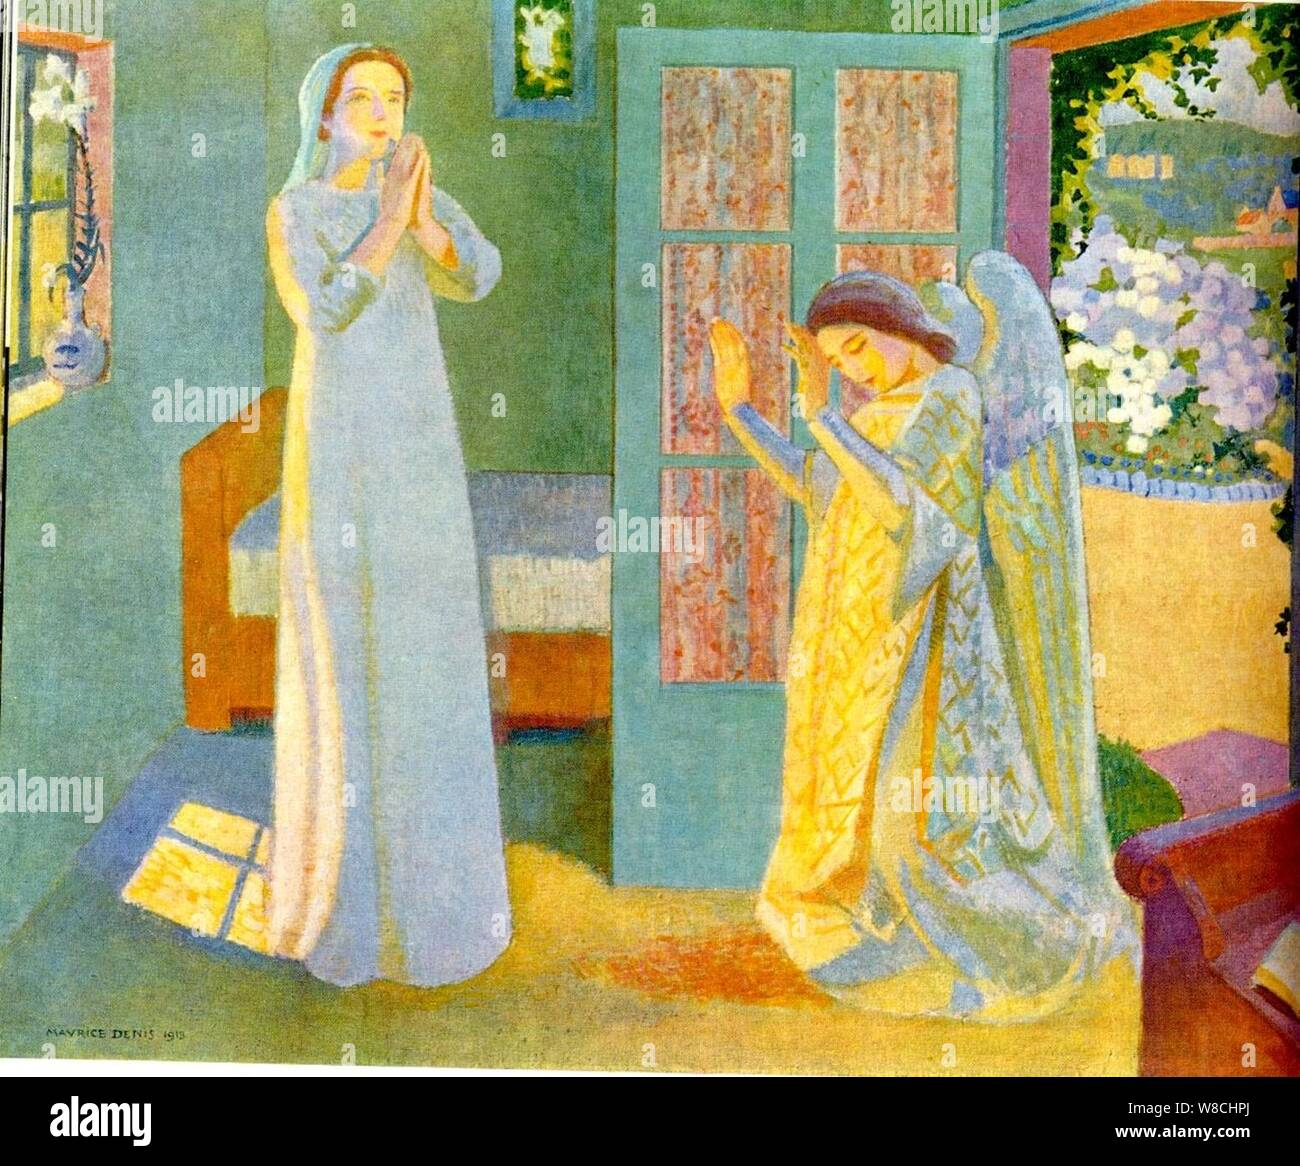 Maurice Denis Homage To Cezanne